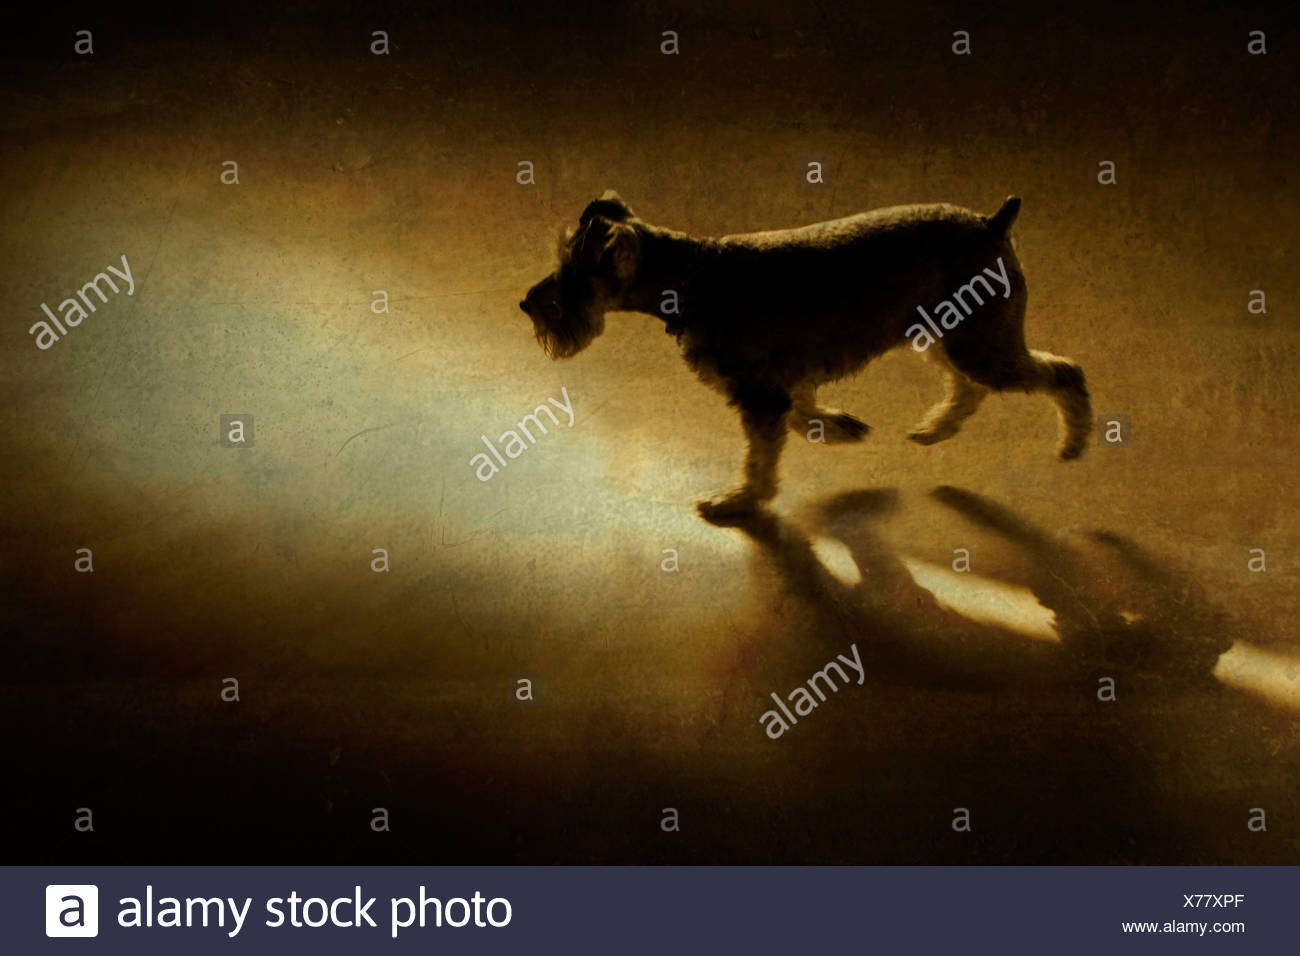 A small dog walking in the evening light - Stock Image